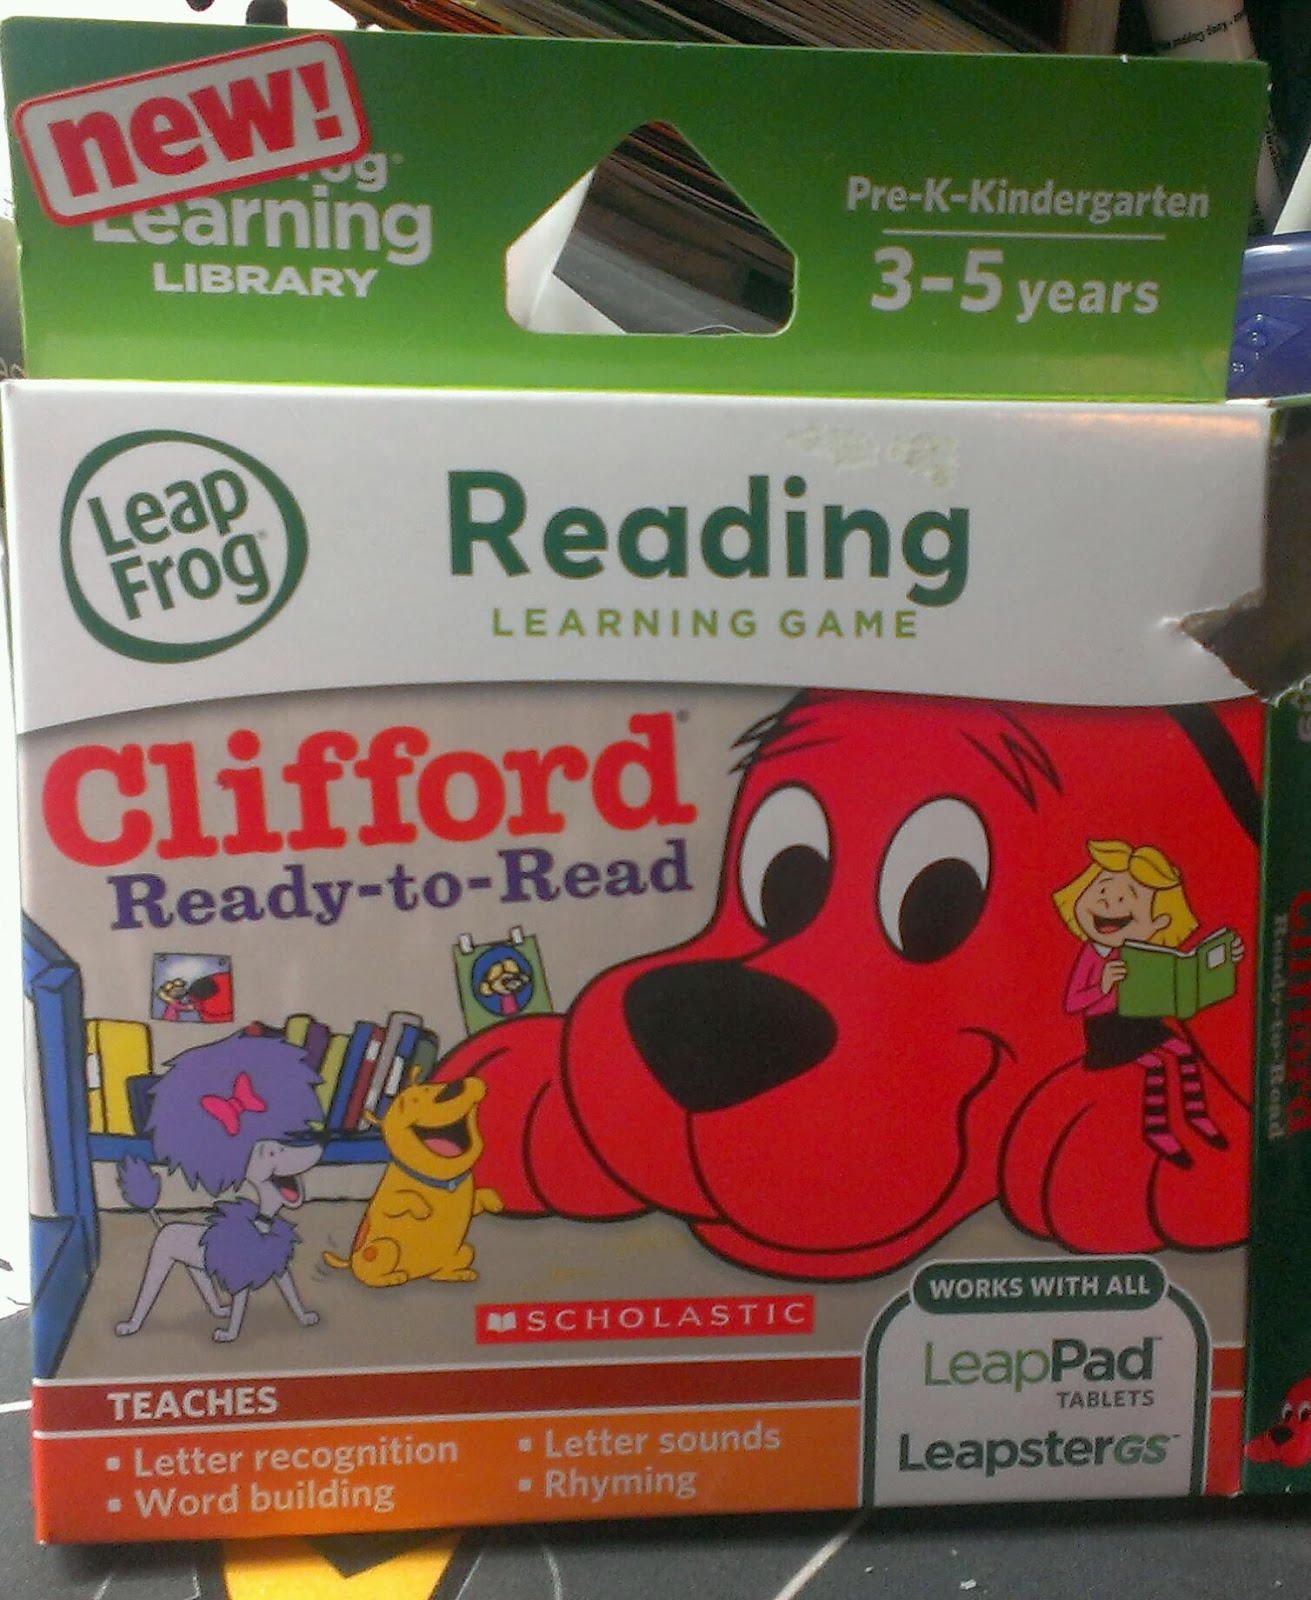 Clifford Ready-to-Read Game